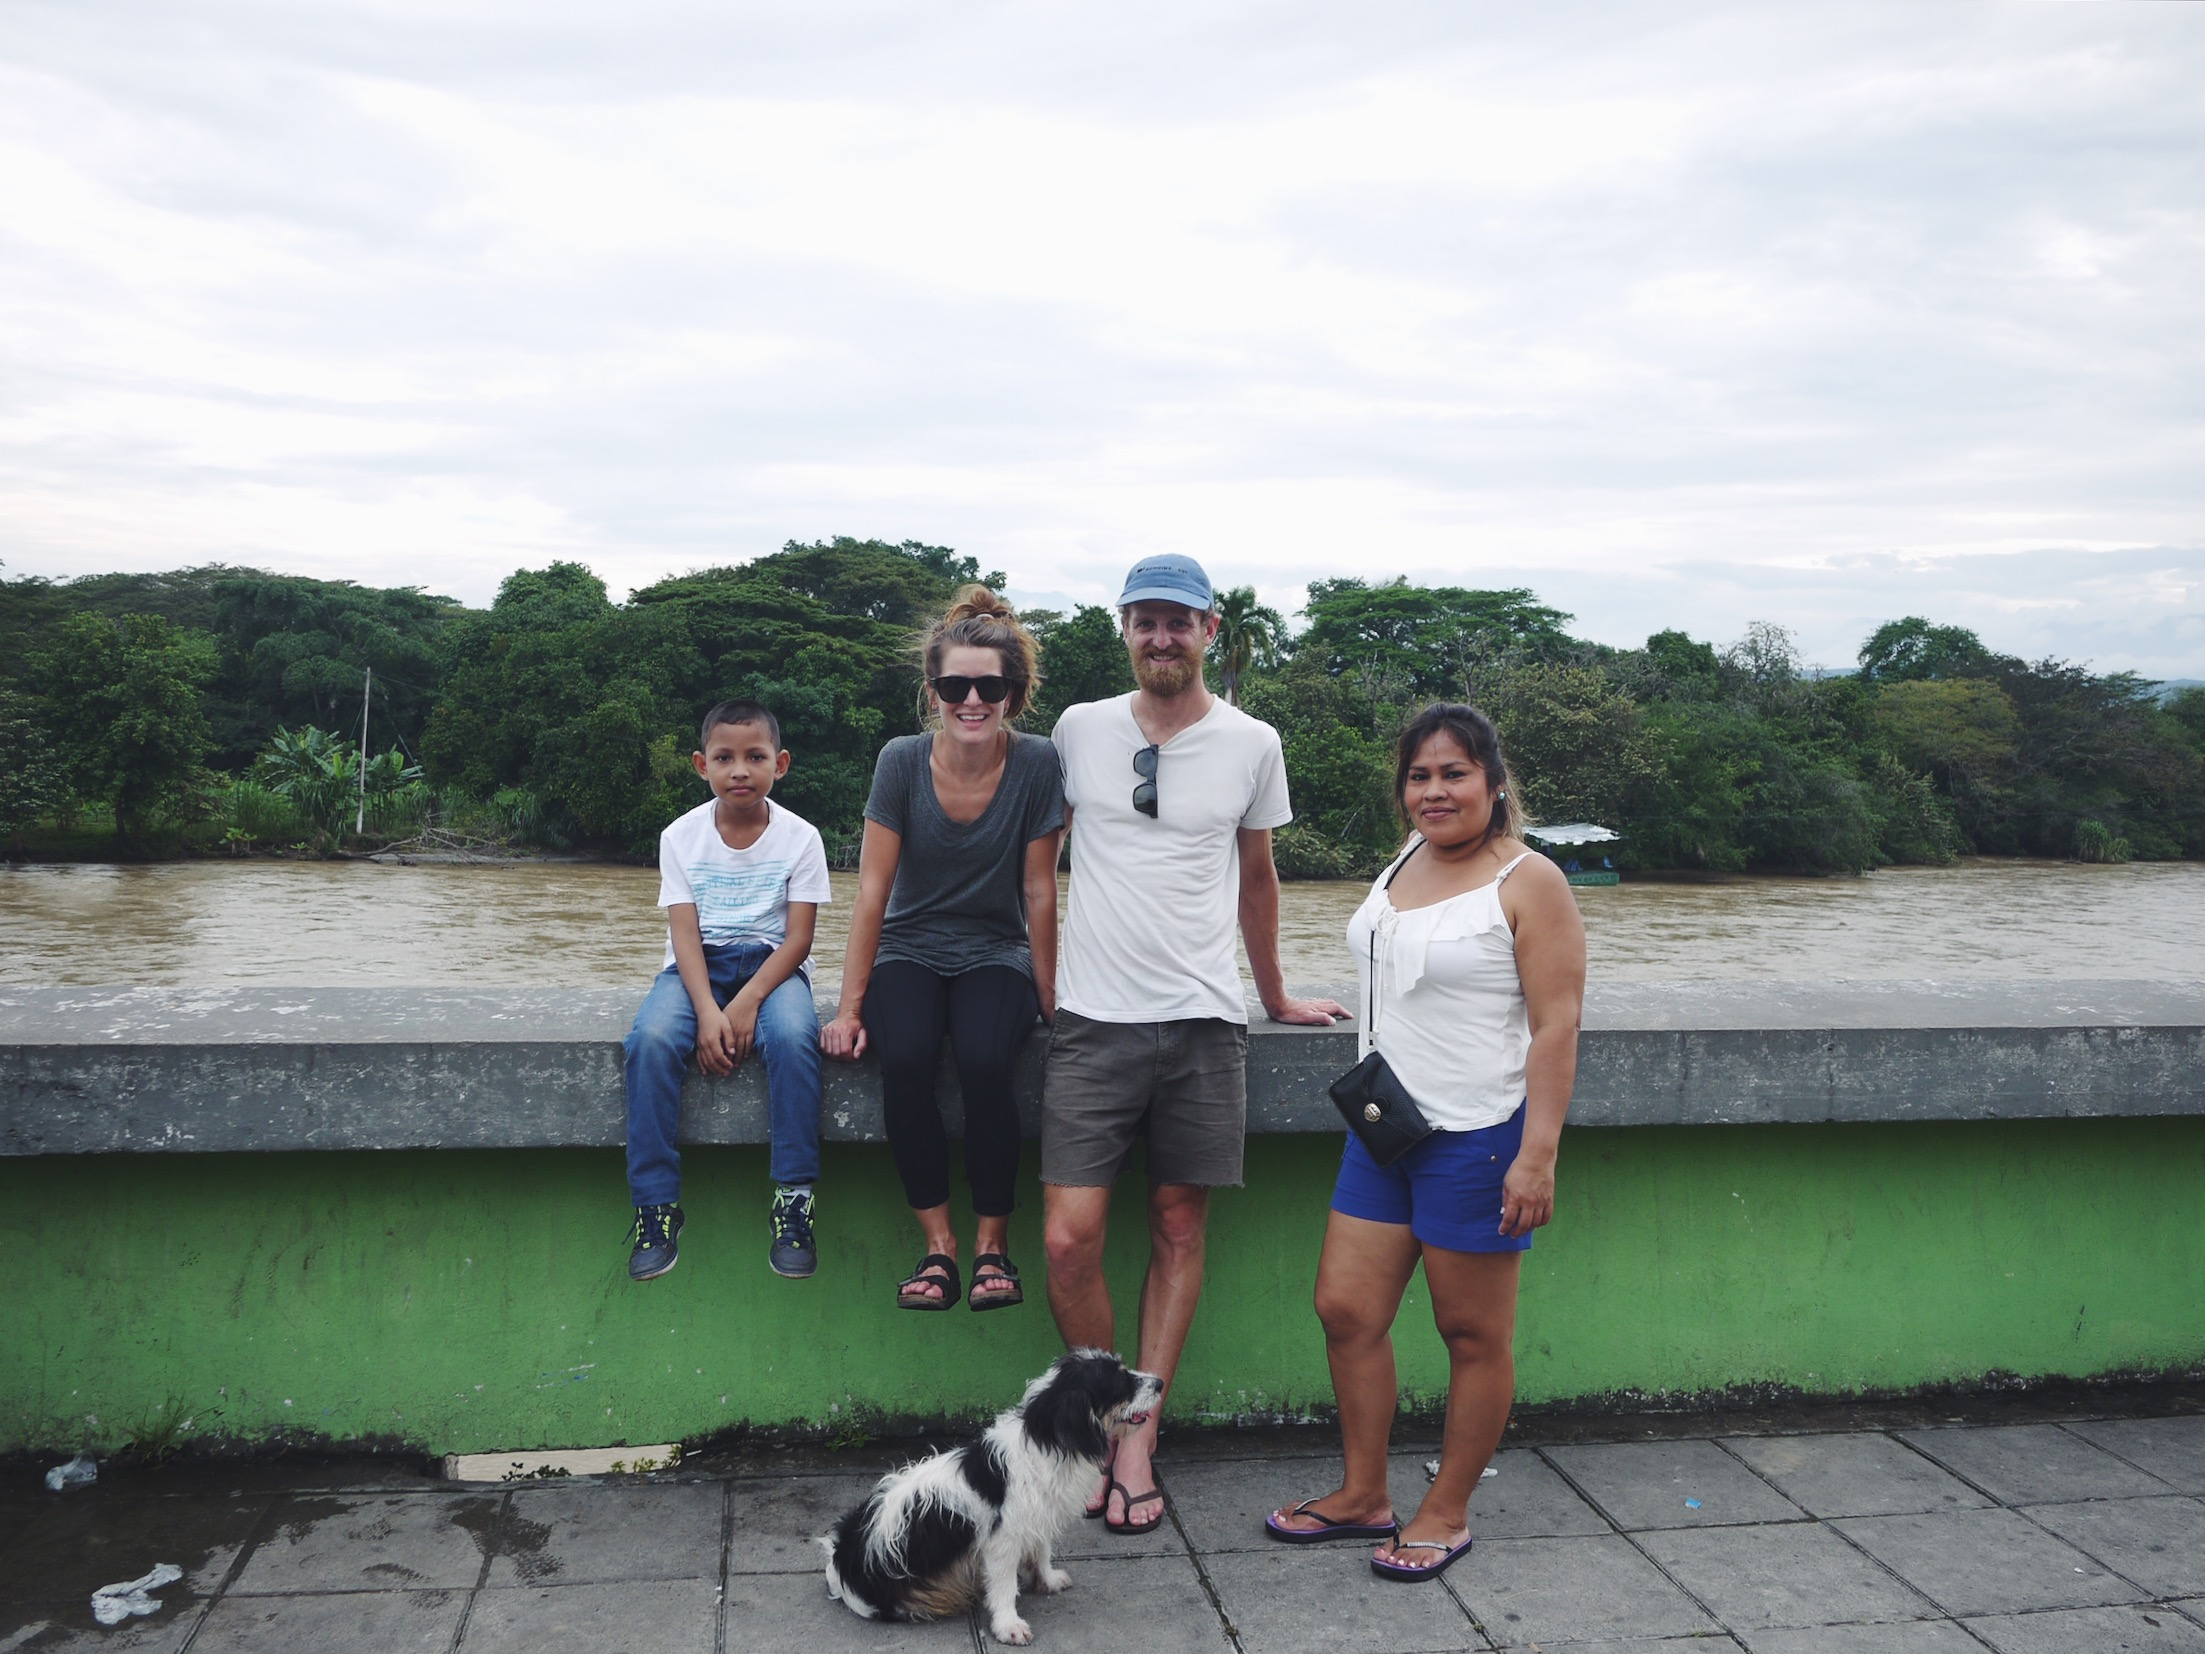 Our Neiva WarmShowers hosts took us on a walking tour to taste the street sweets and see the mighty Río Magdalena. Scooby came even though he was asked not to. The dog, not the kid.